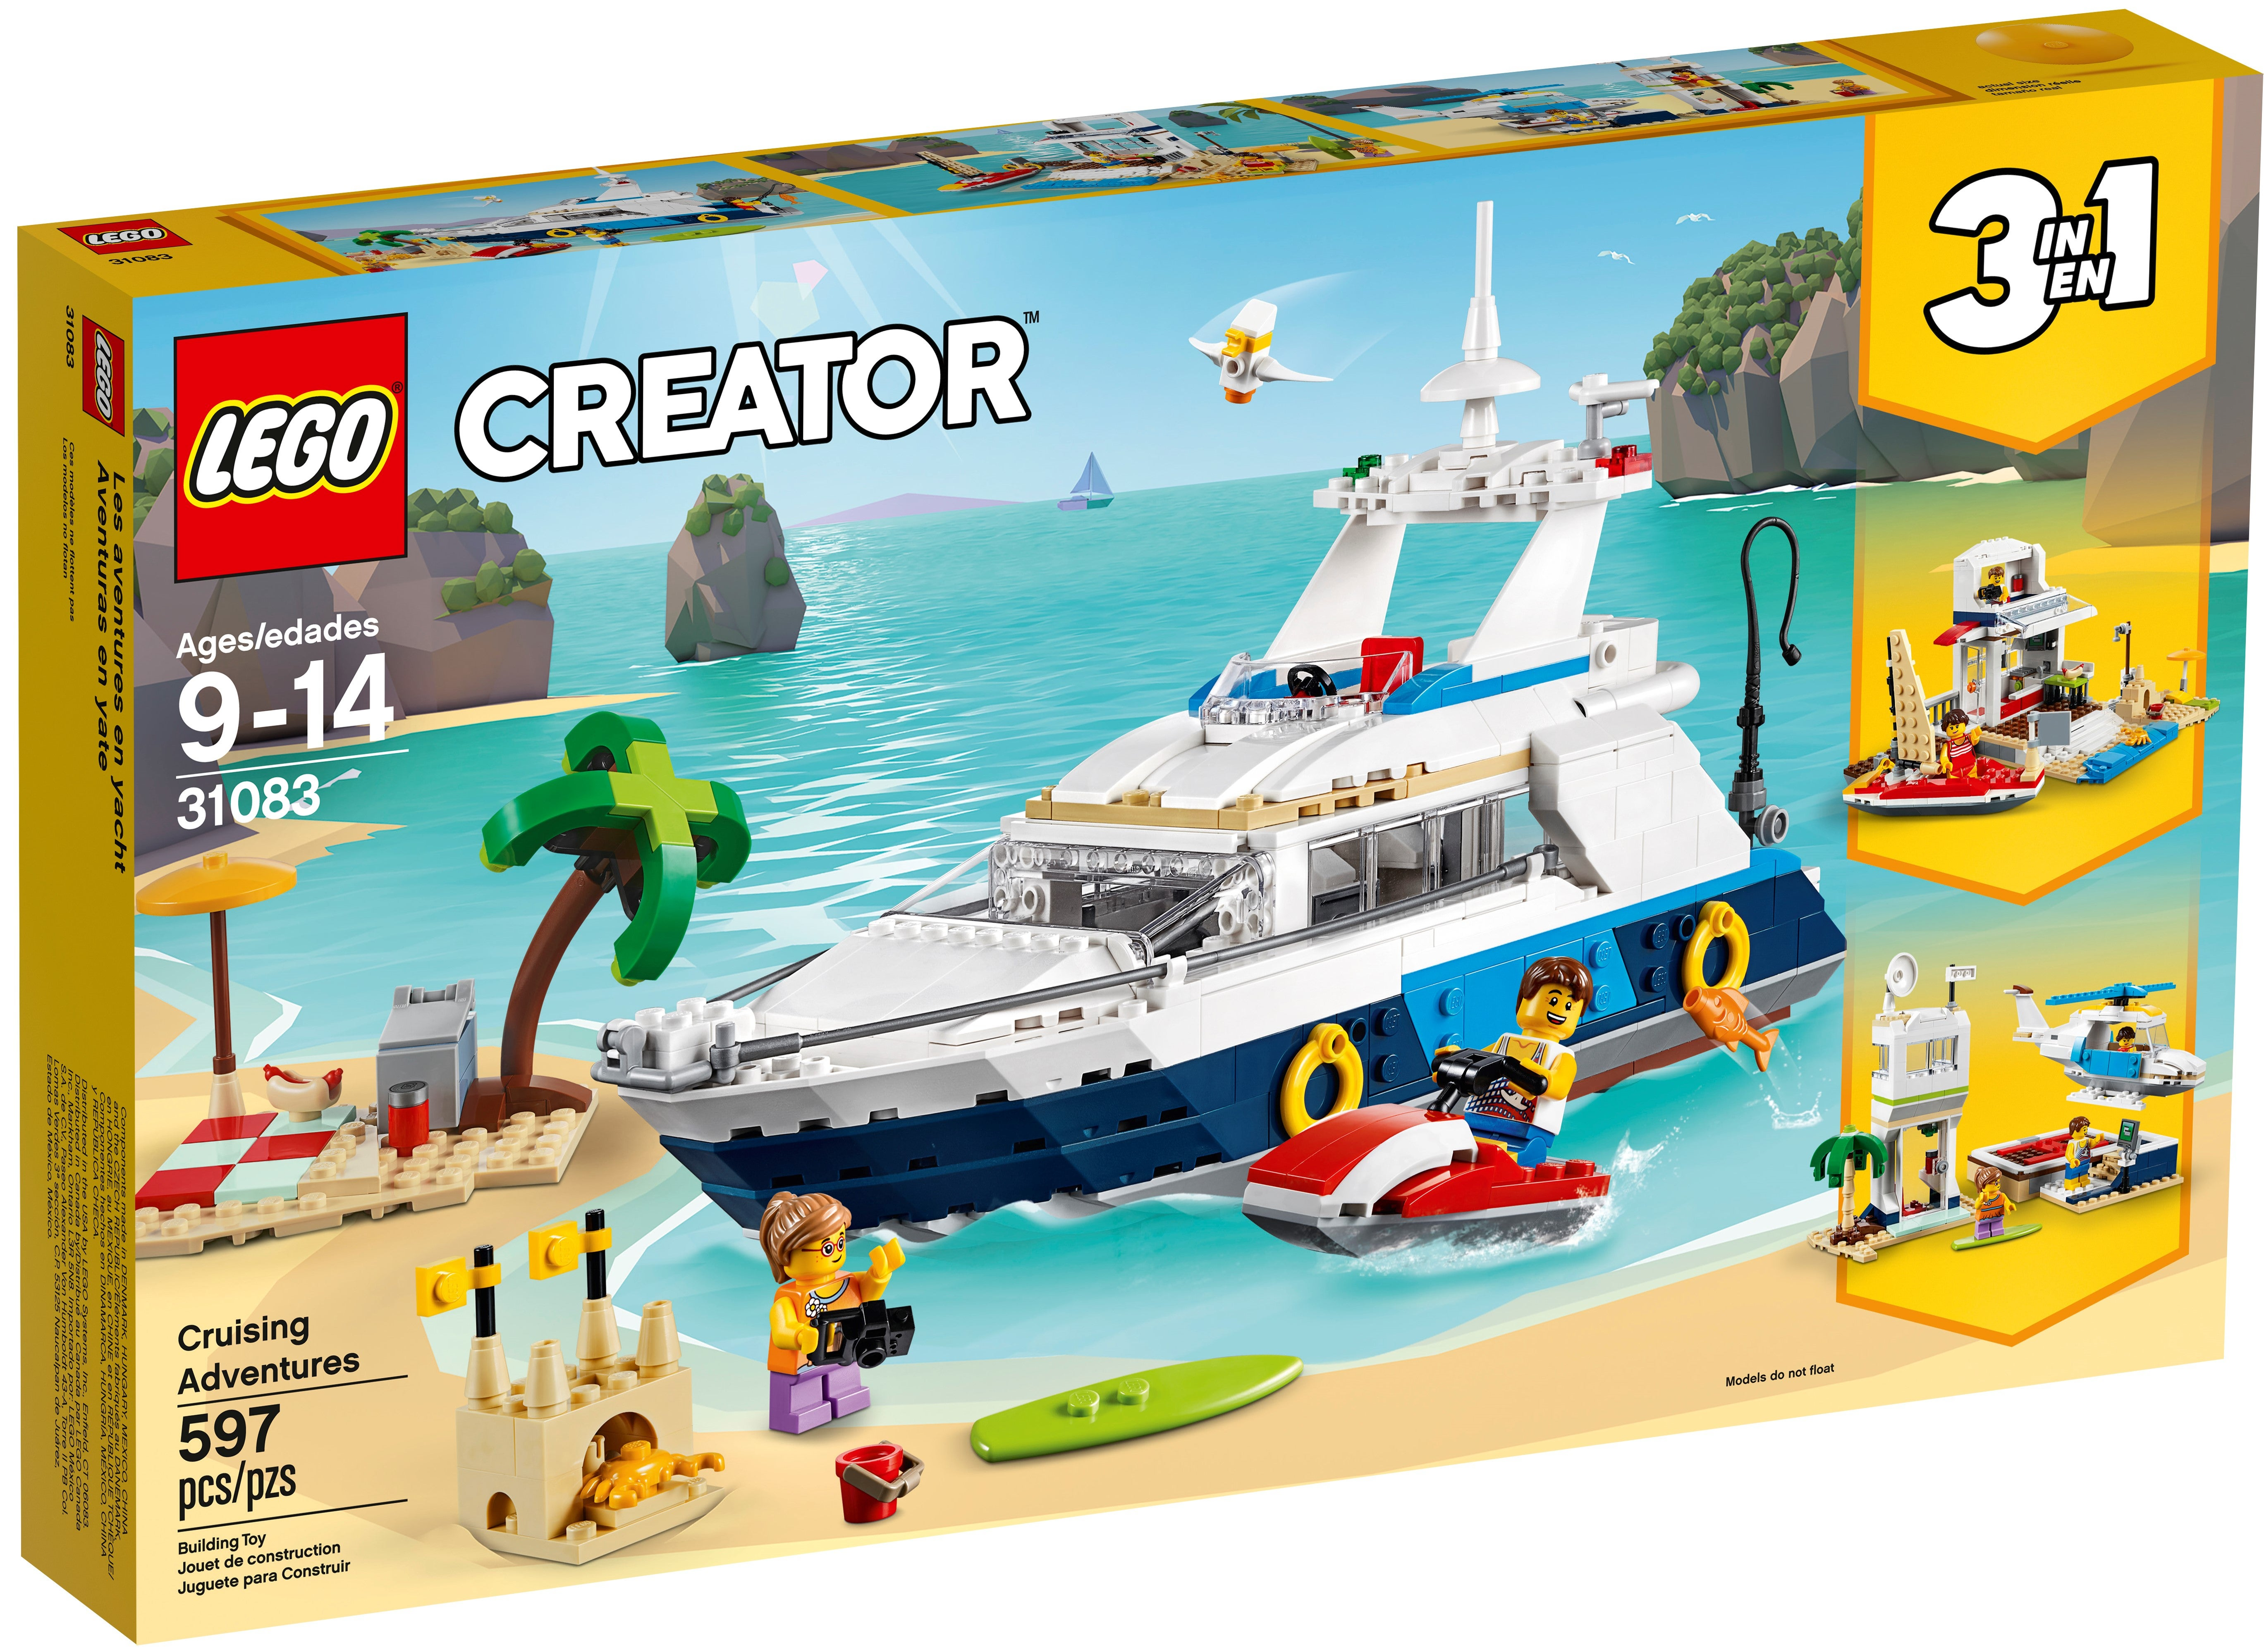 d7 lego creator system with full occasion ba plane boat high figurines